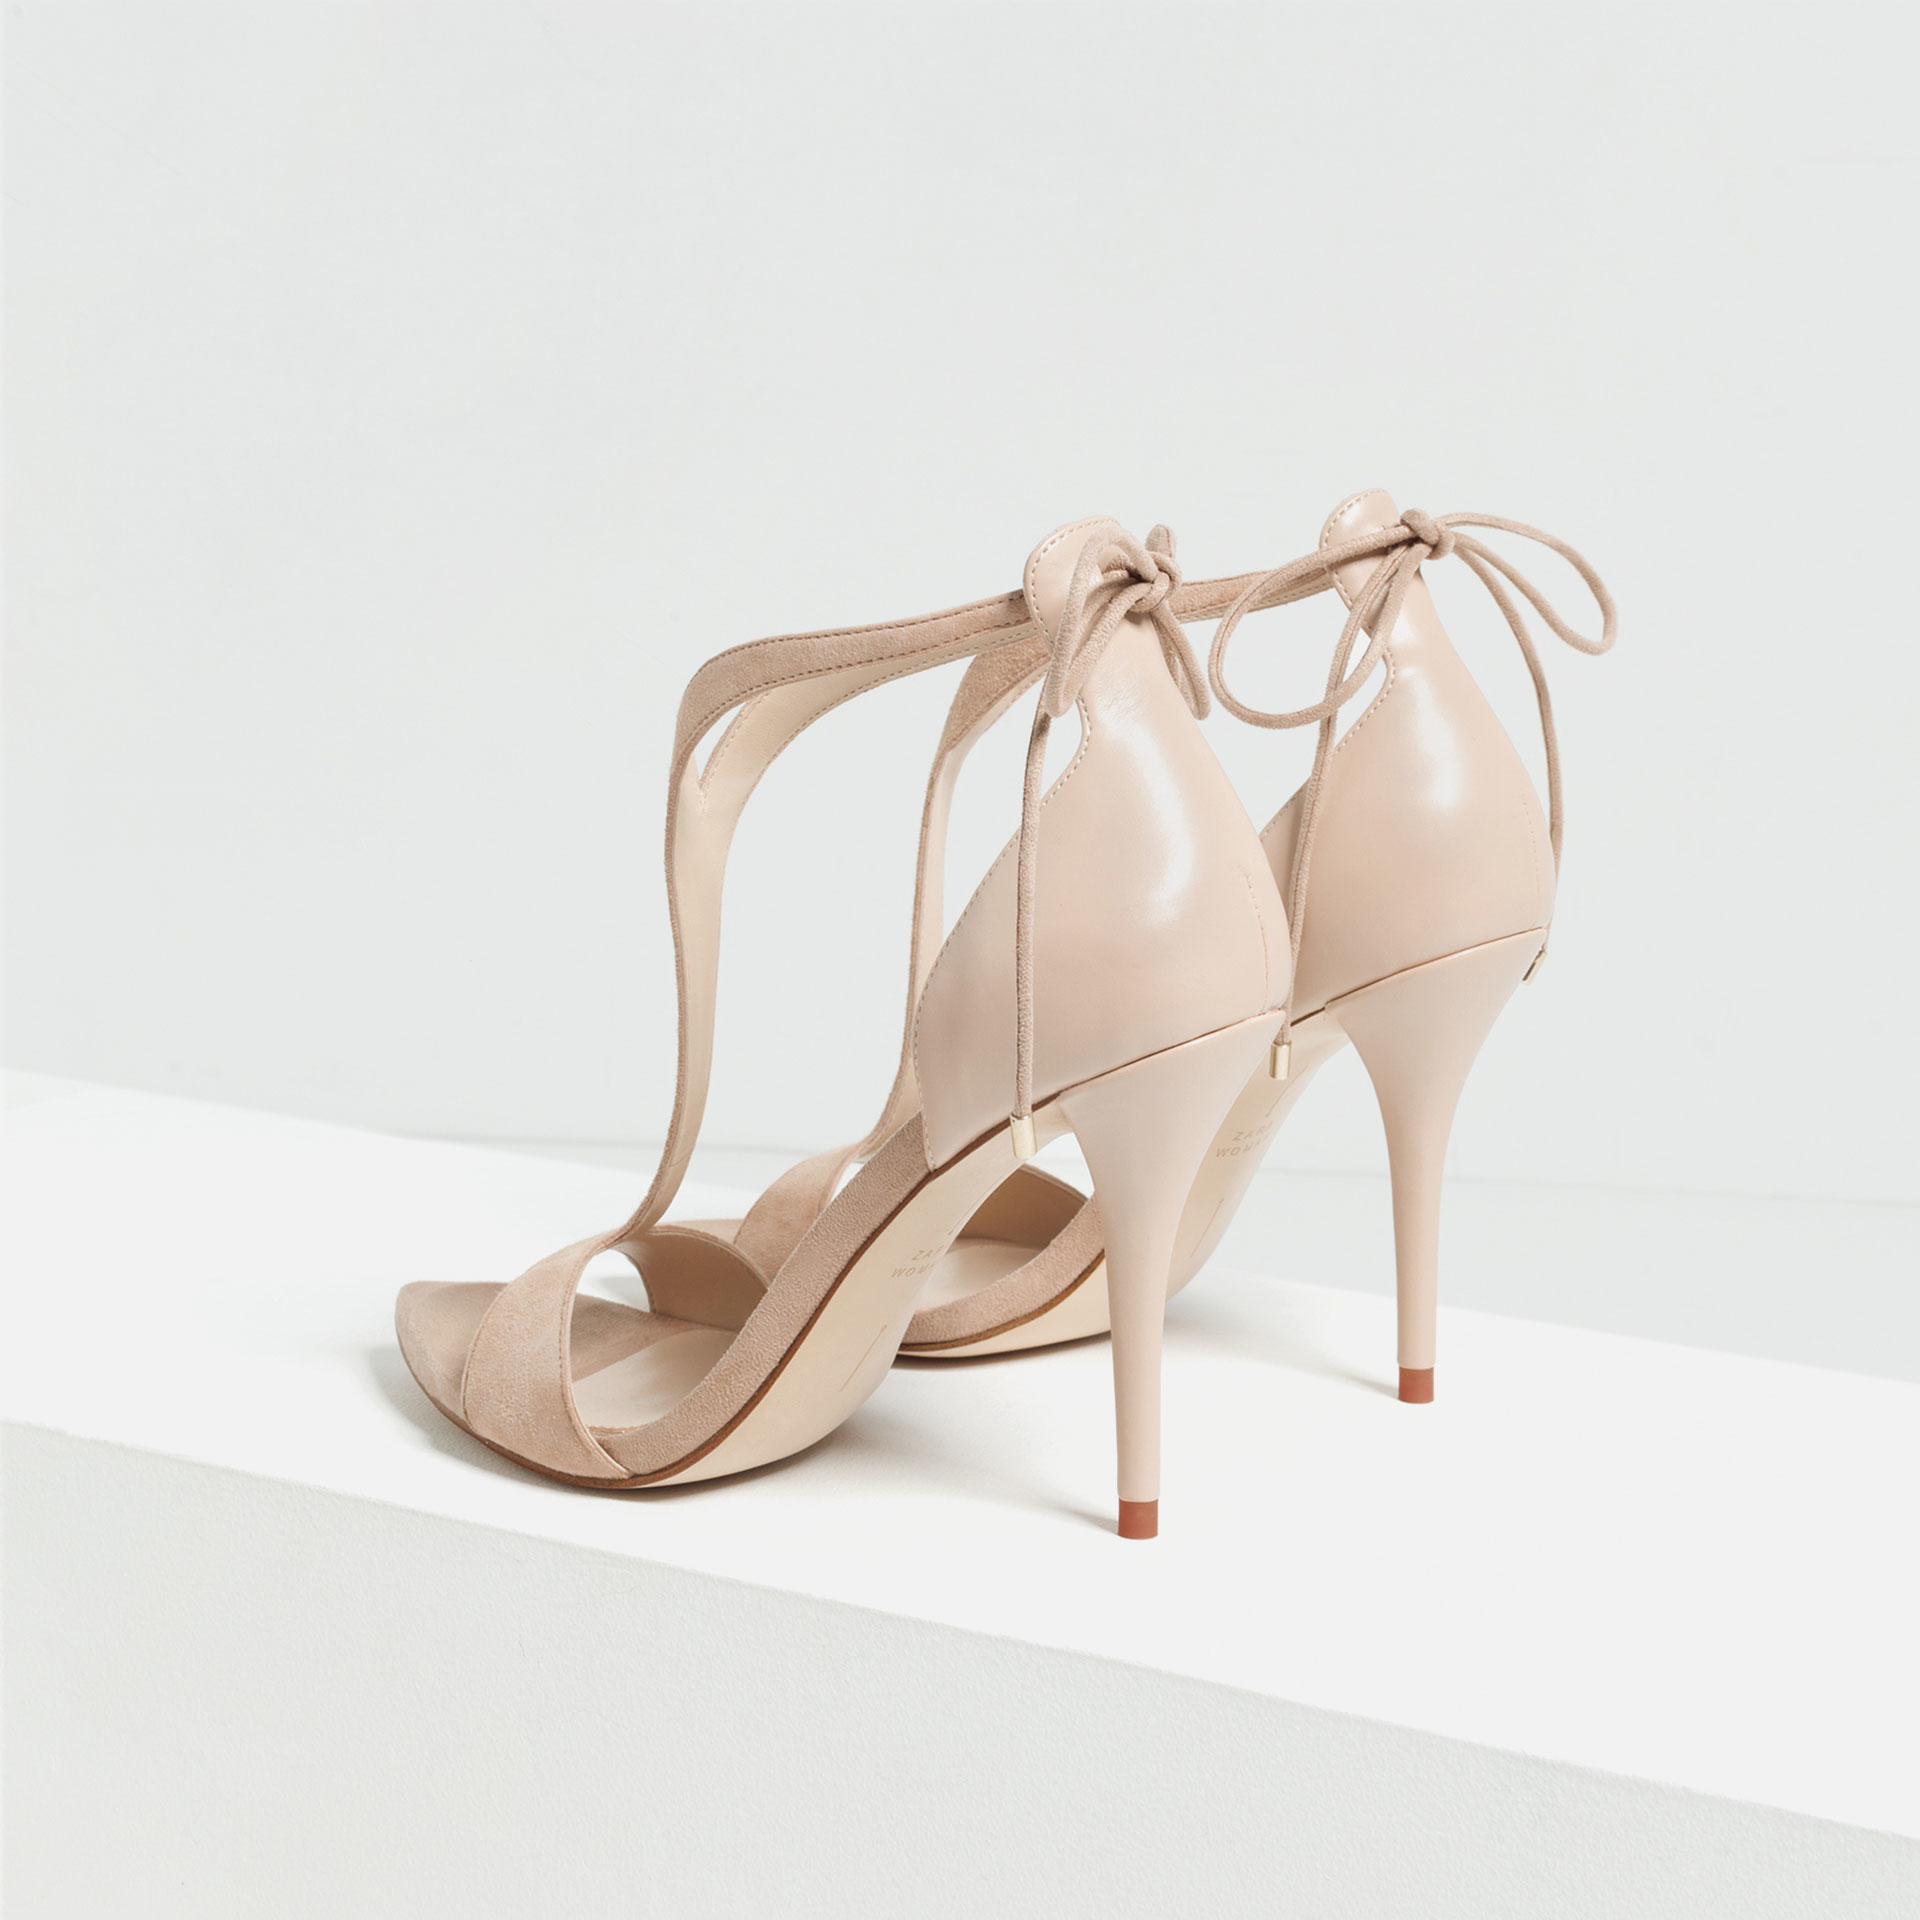 Zara High Heel Strappy Sandals in Natural | Lyst